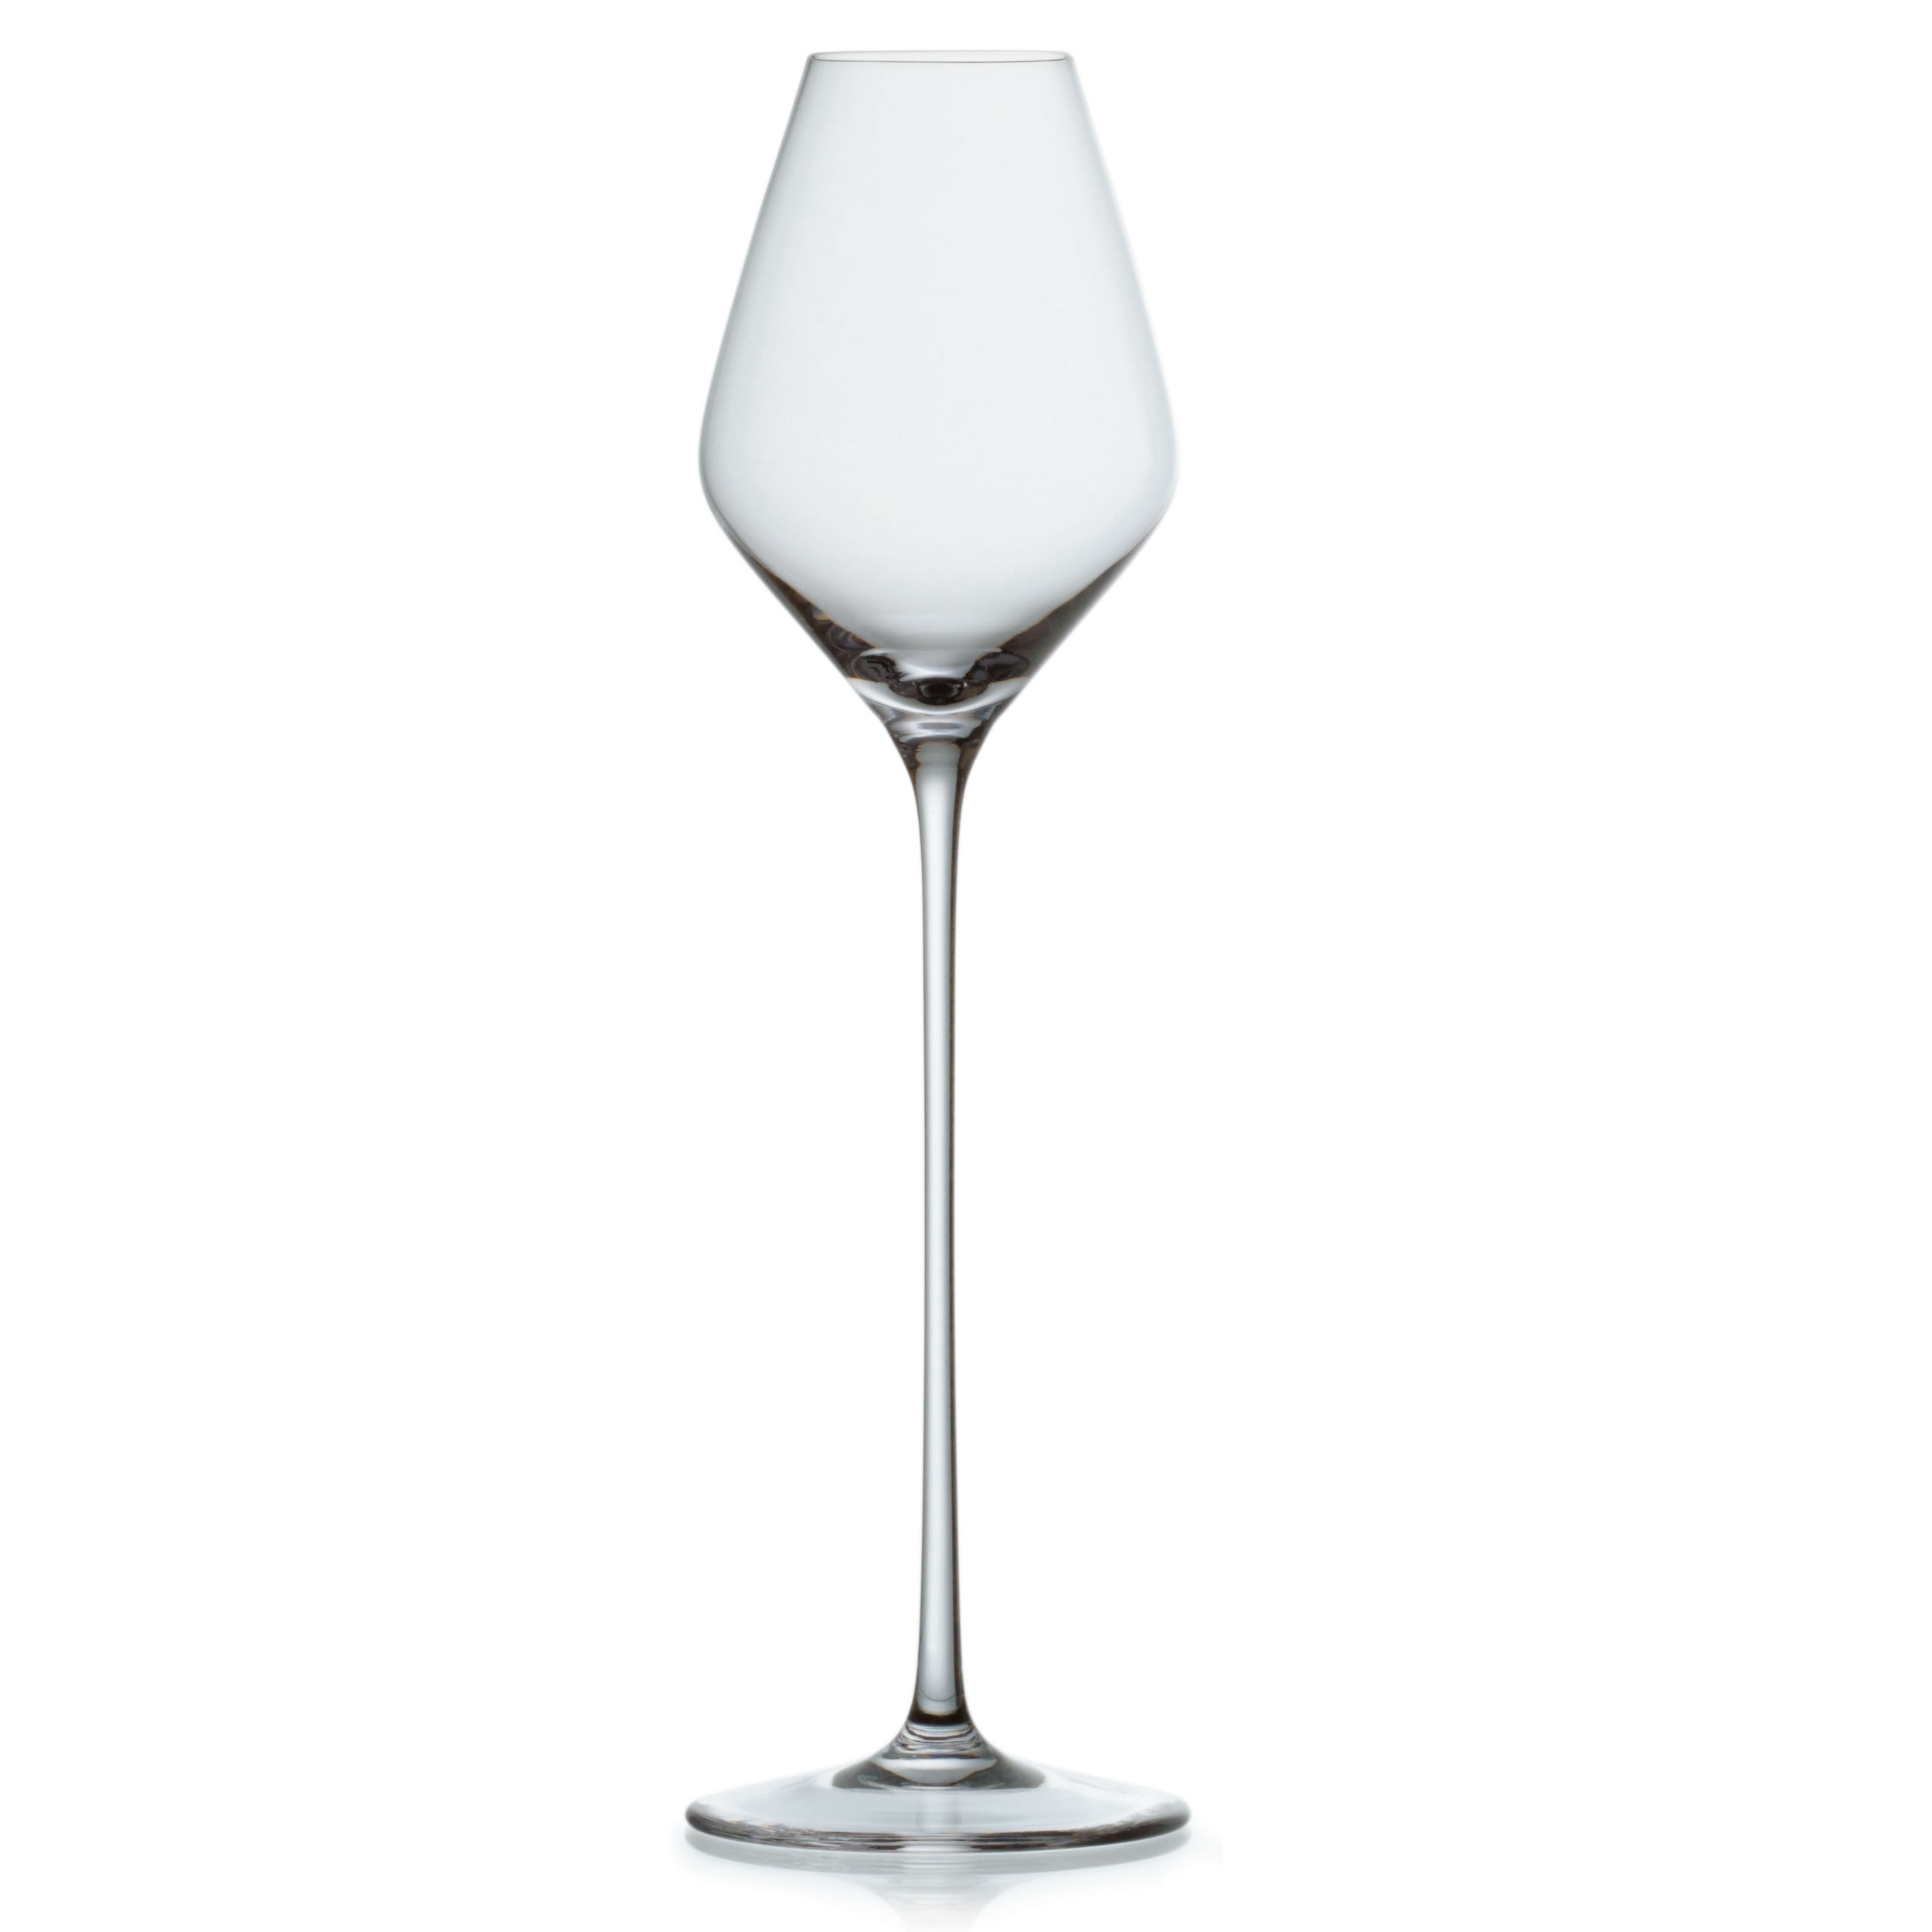 Weinkelch Glas Zwiesel 1872 Fino Dessert Wine Glass 4 Wine Glass Wine Goblet Glass 371 Ml 109551 At About Tea De Shop